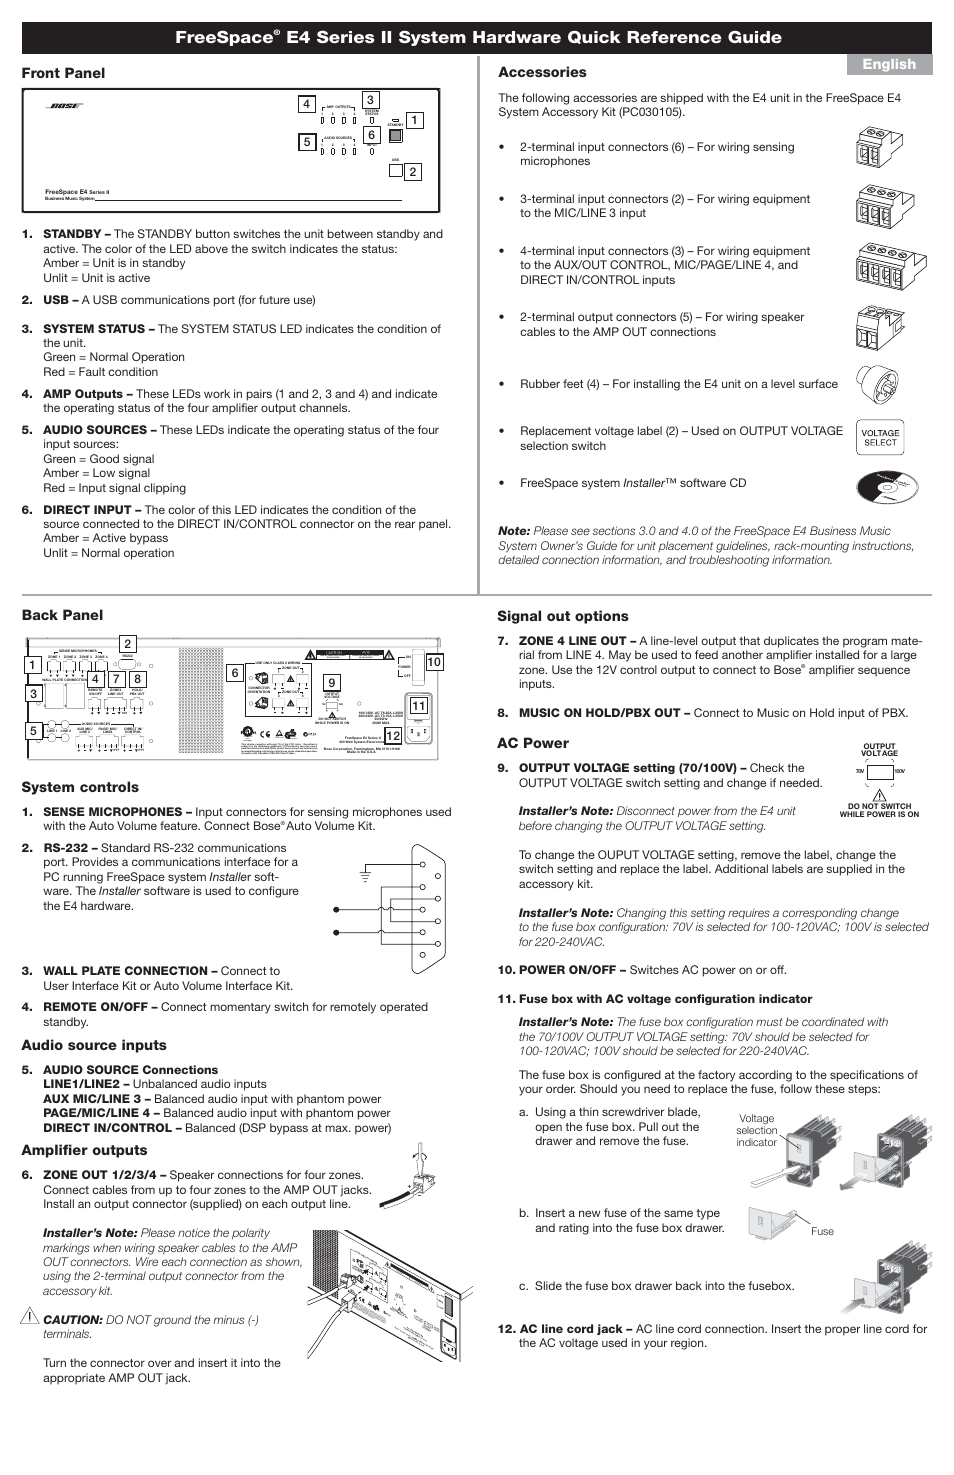 Freespace E4 Series Ii System Hardware Quick Reference Guide Ac Voltage Wiring Signal Out Options Bose Manuel Dutilisation Page 2 4